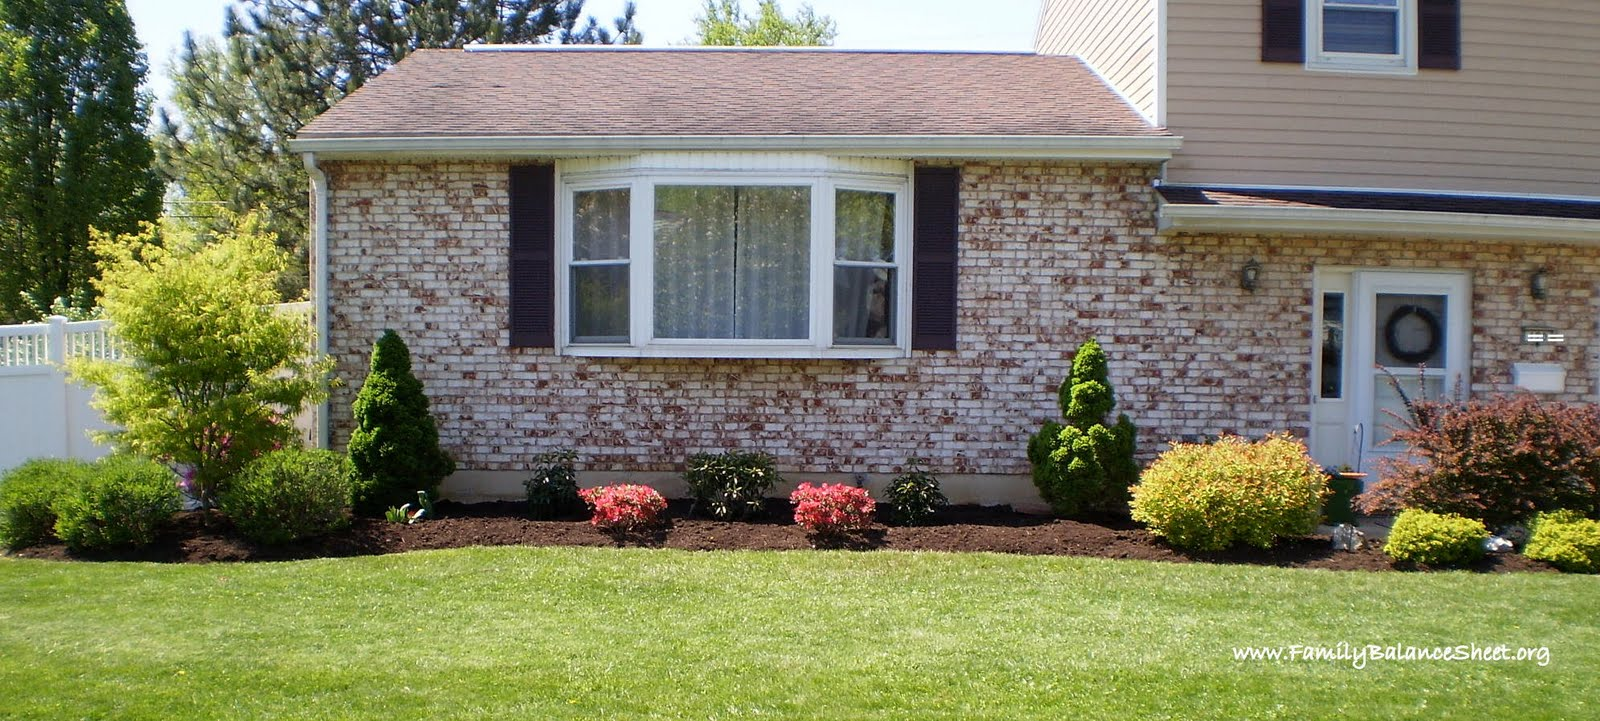 15 tips to help you design your front yard save money too for Simple front garden designs